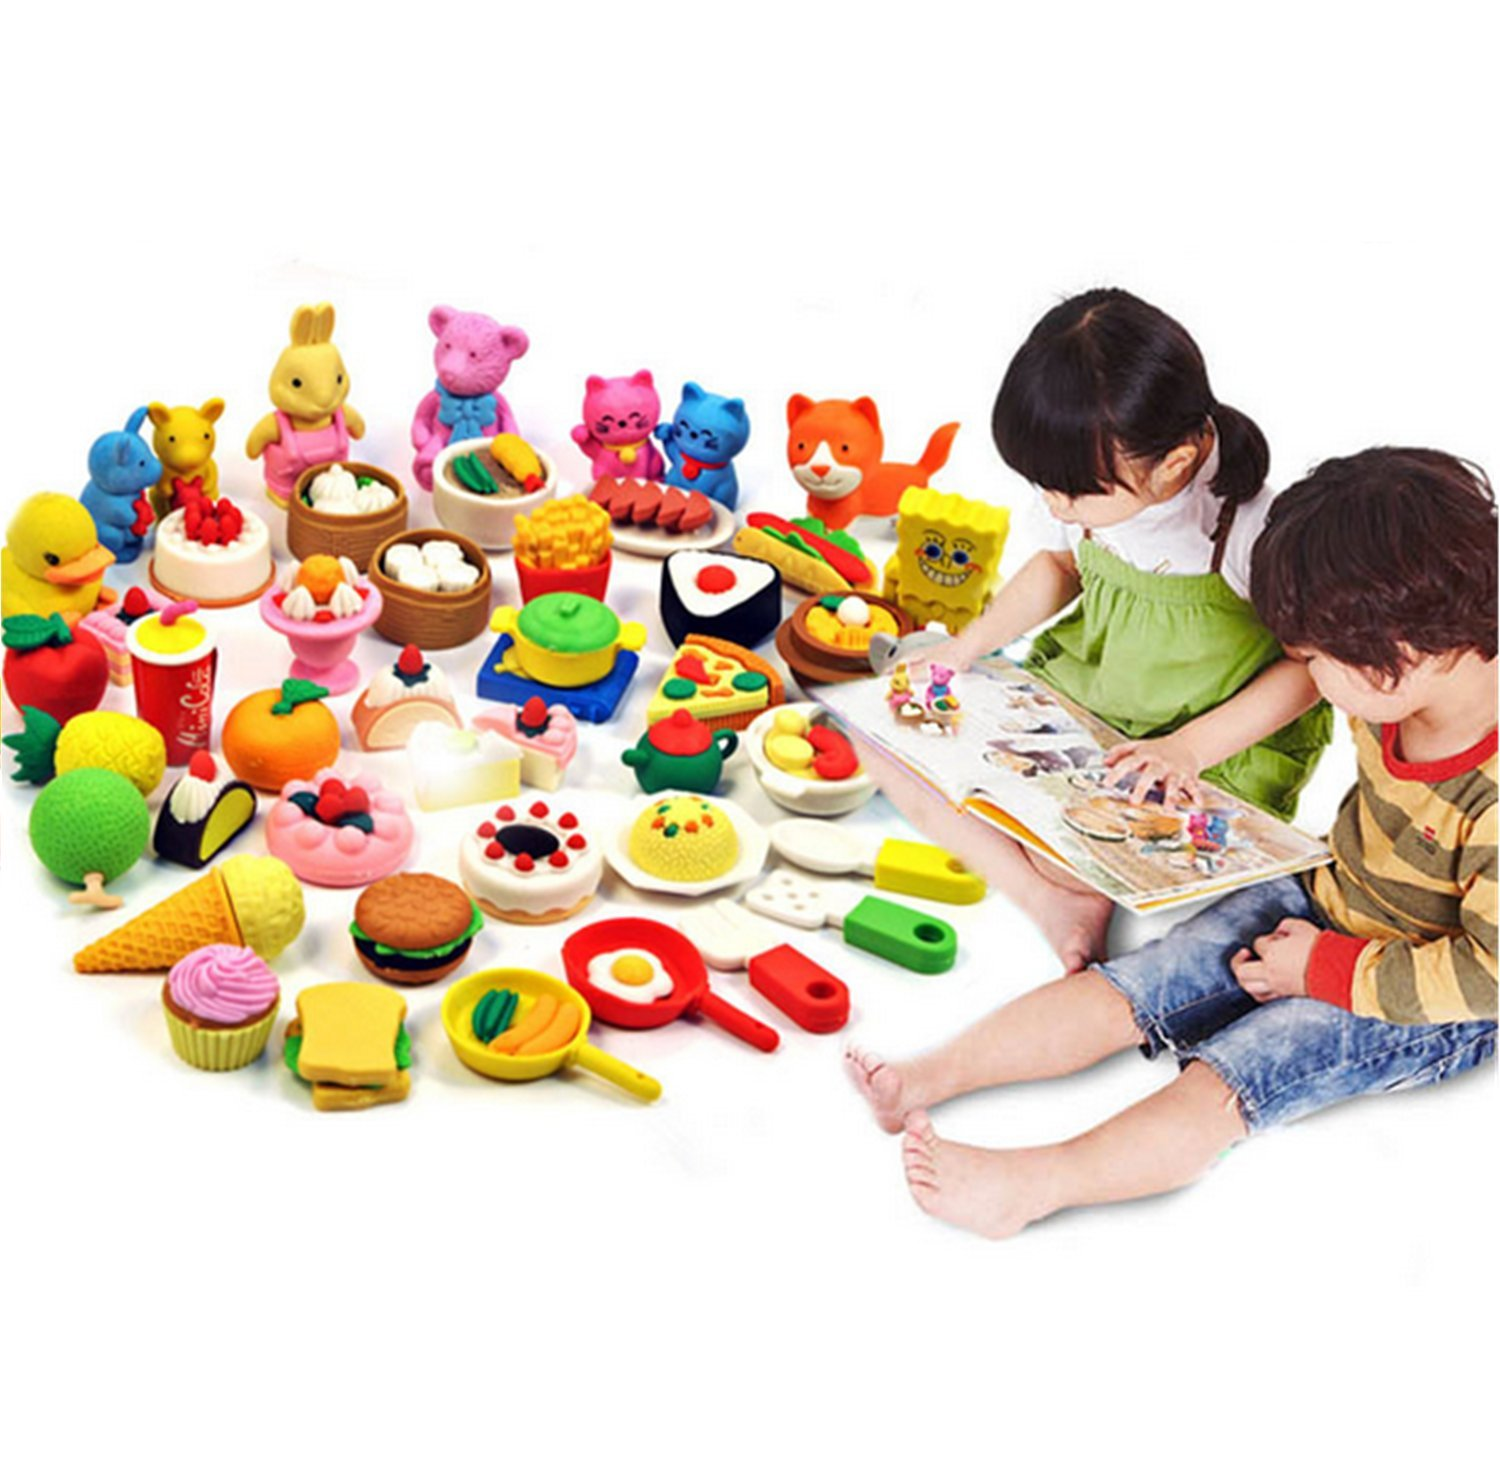 Chris-Wang 40Pcs Assorted Color Mini Kawaii Cartoon Animal Artificial Food Cute Rubber Eraser School Stationery Supplies Toy for Children Day Gift Kids Party Favors by Chris-Wang (Image #2)